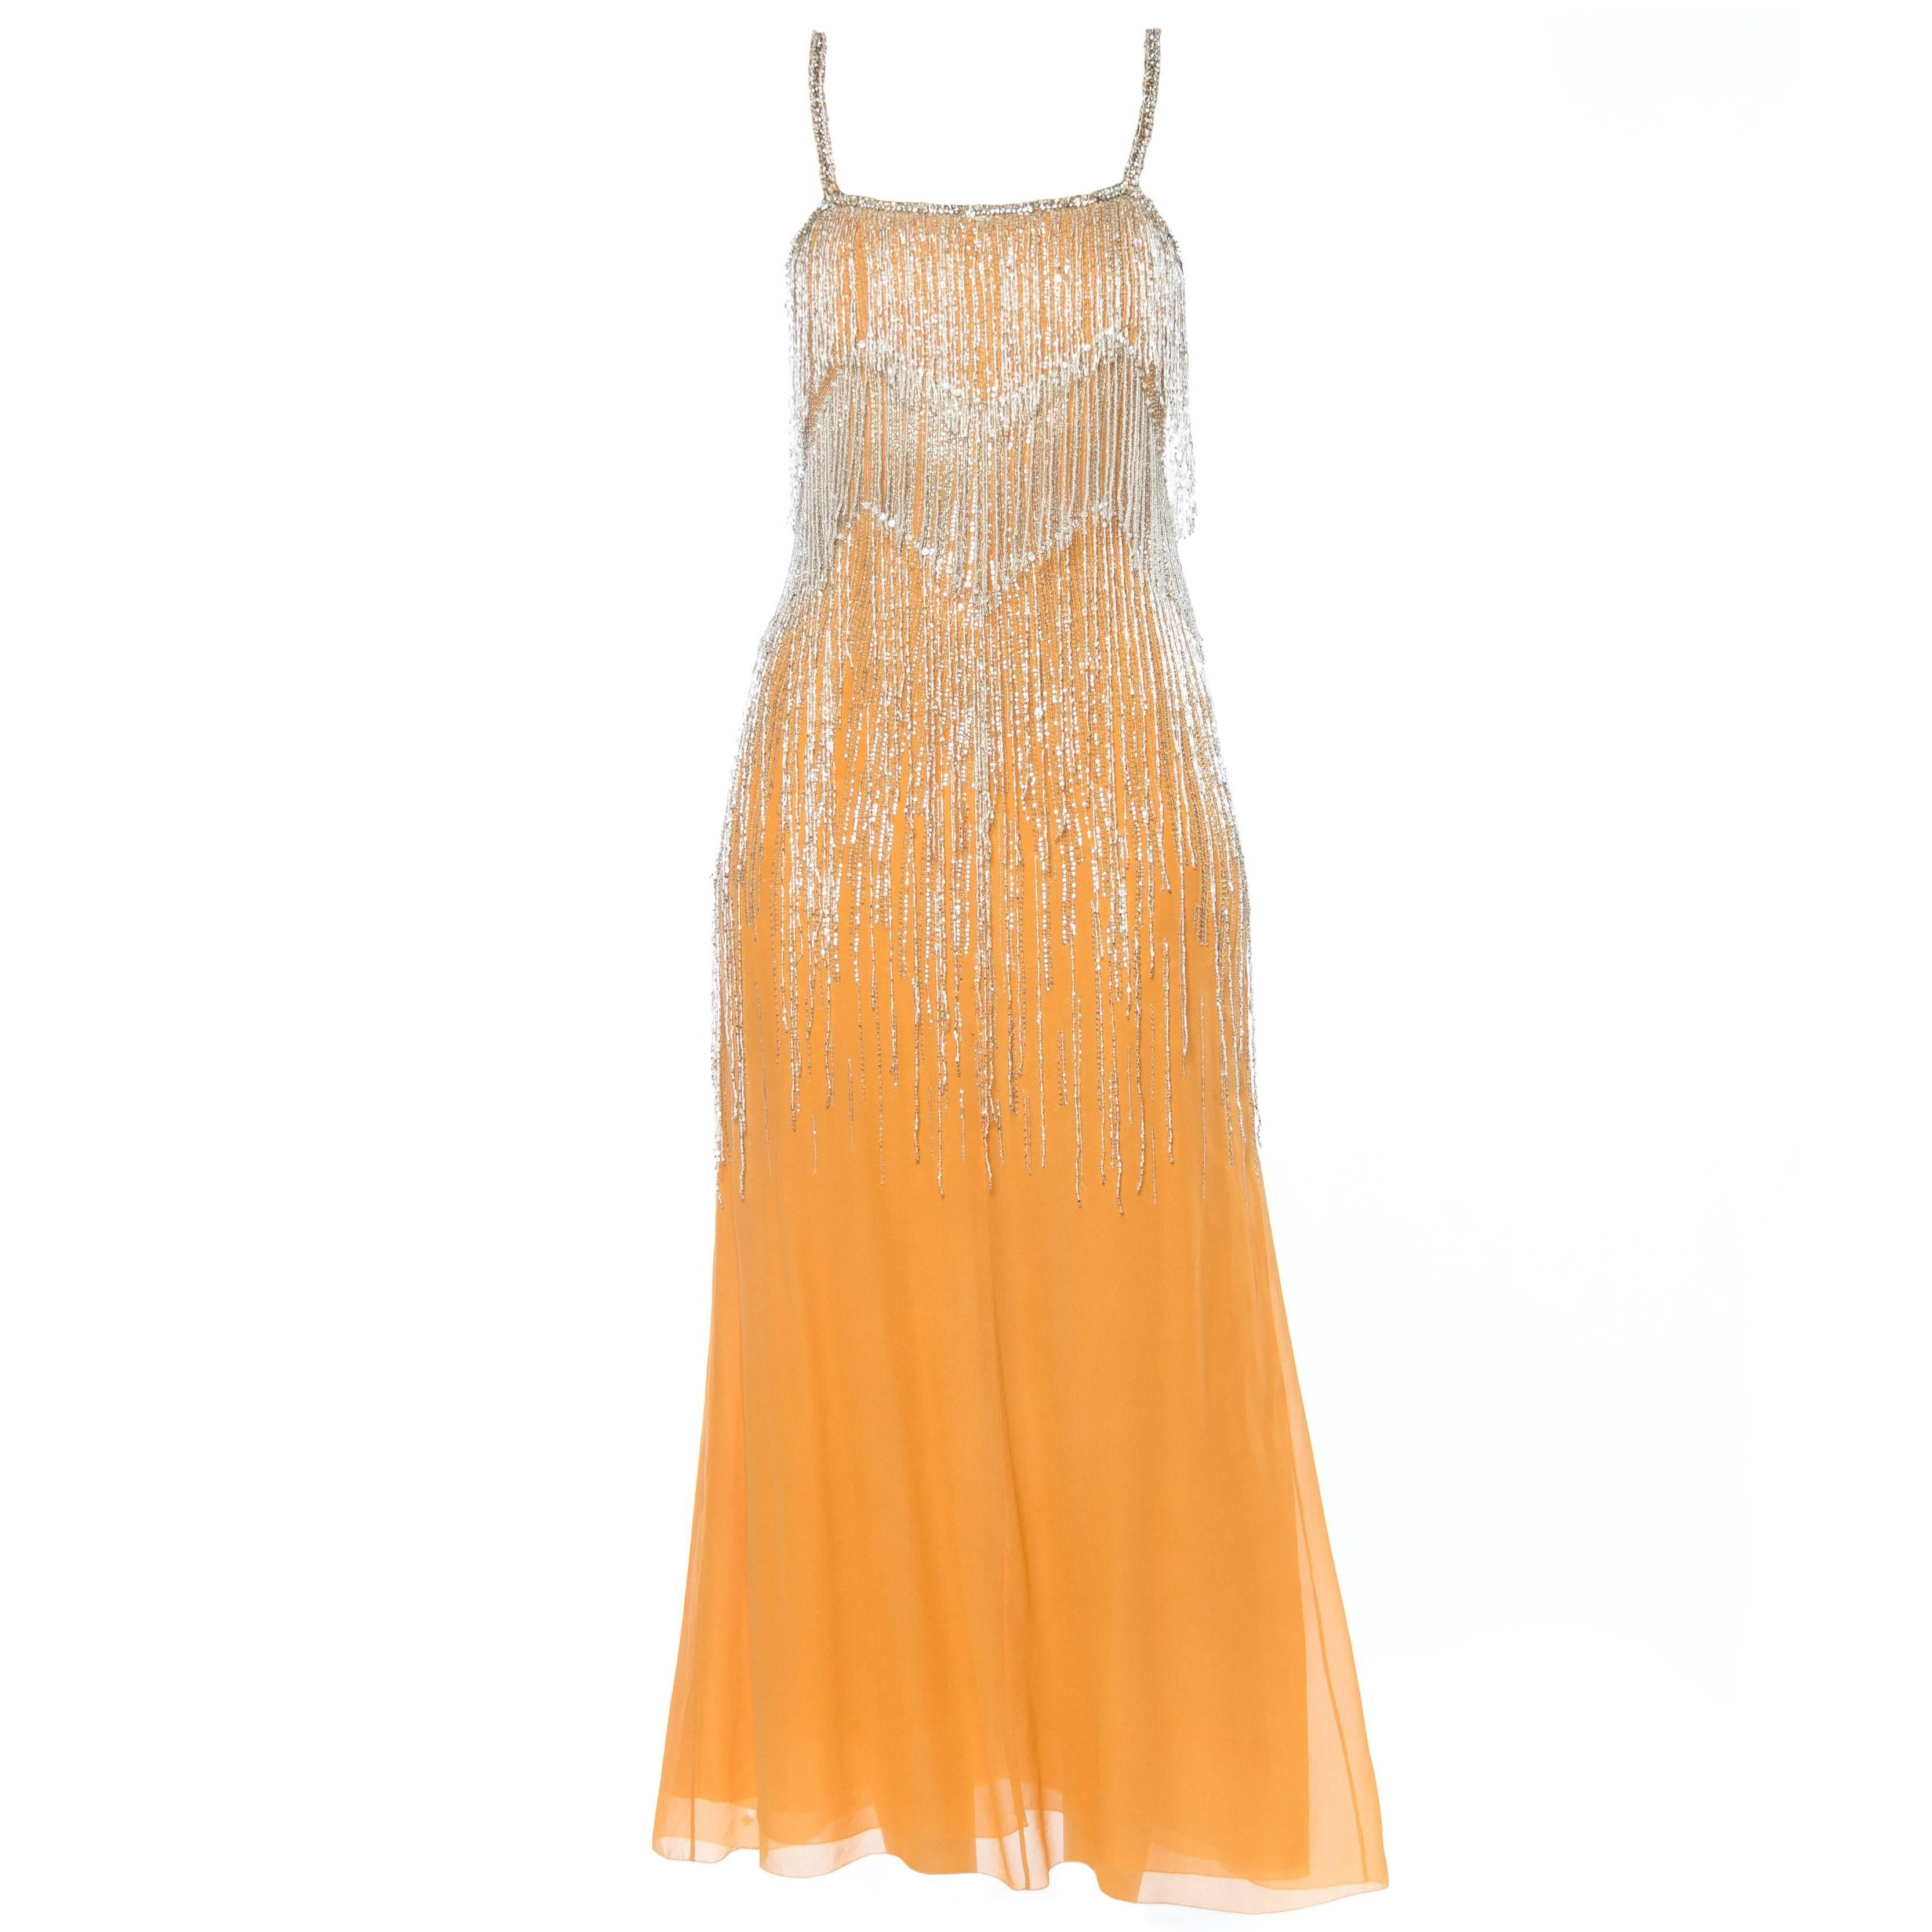 1970S CHRISTIAN DIOR Haute Couture Silk Chiffon Crystal Beaded Fringe Cocktail